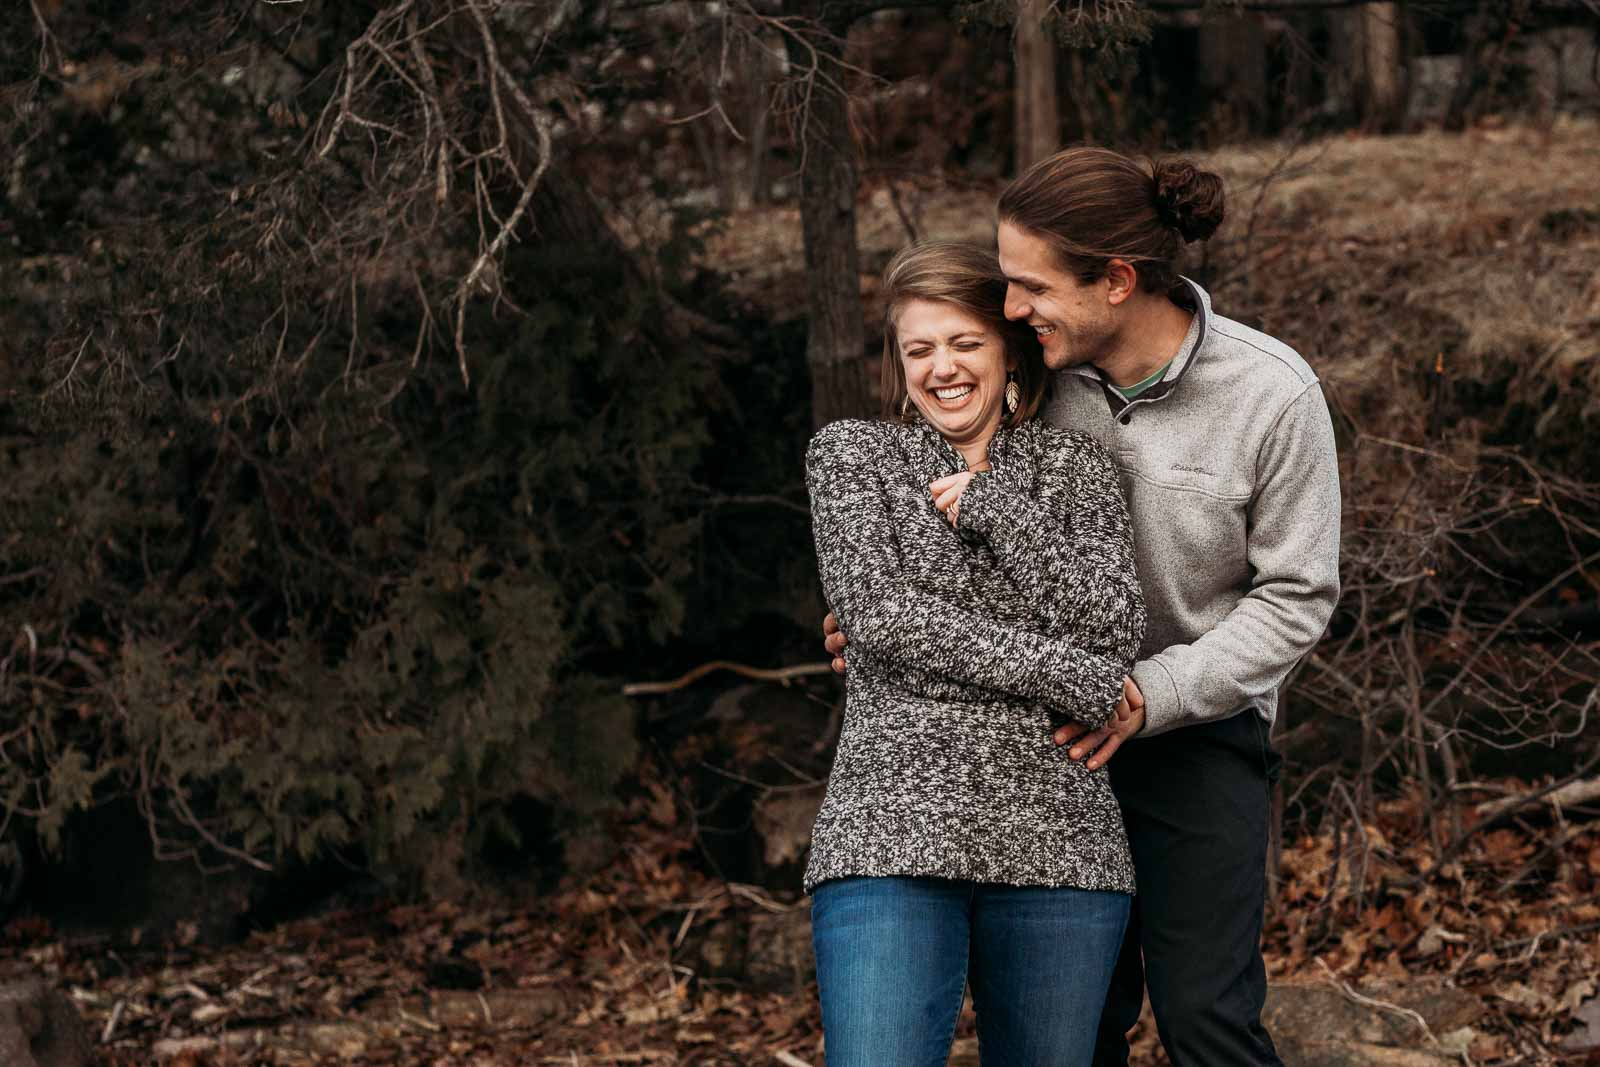 6 Pro secrets for photographing a surprise wedding proposal